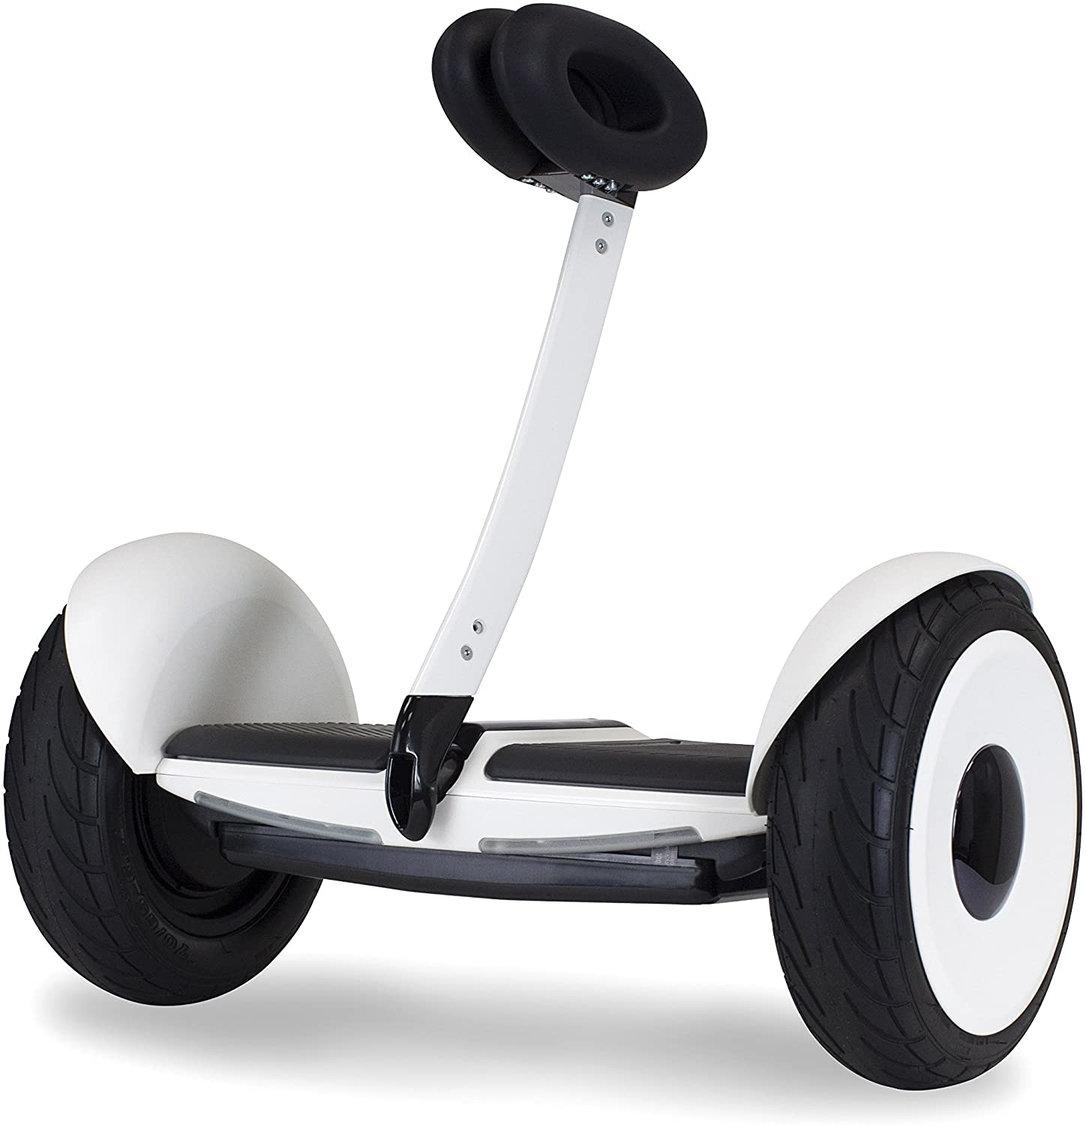 Segway MiniLite Smart Self-Balancing Electric Scooter Transporter Review